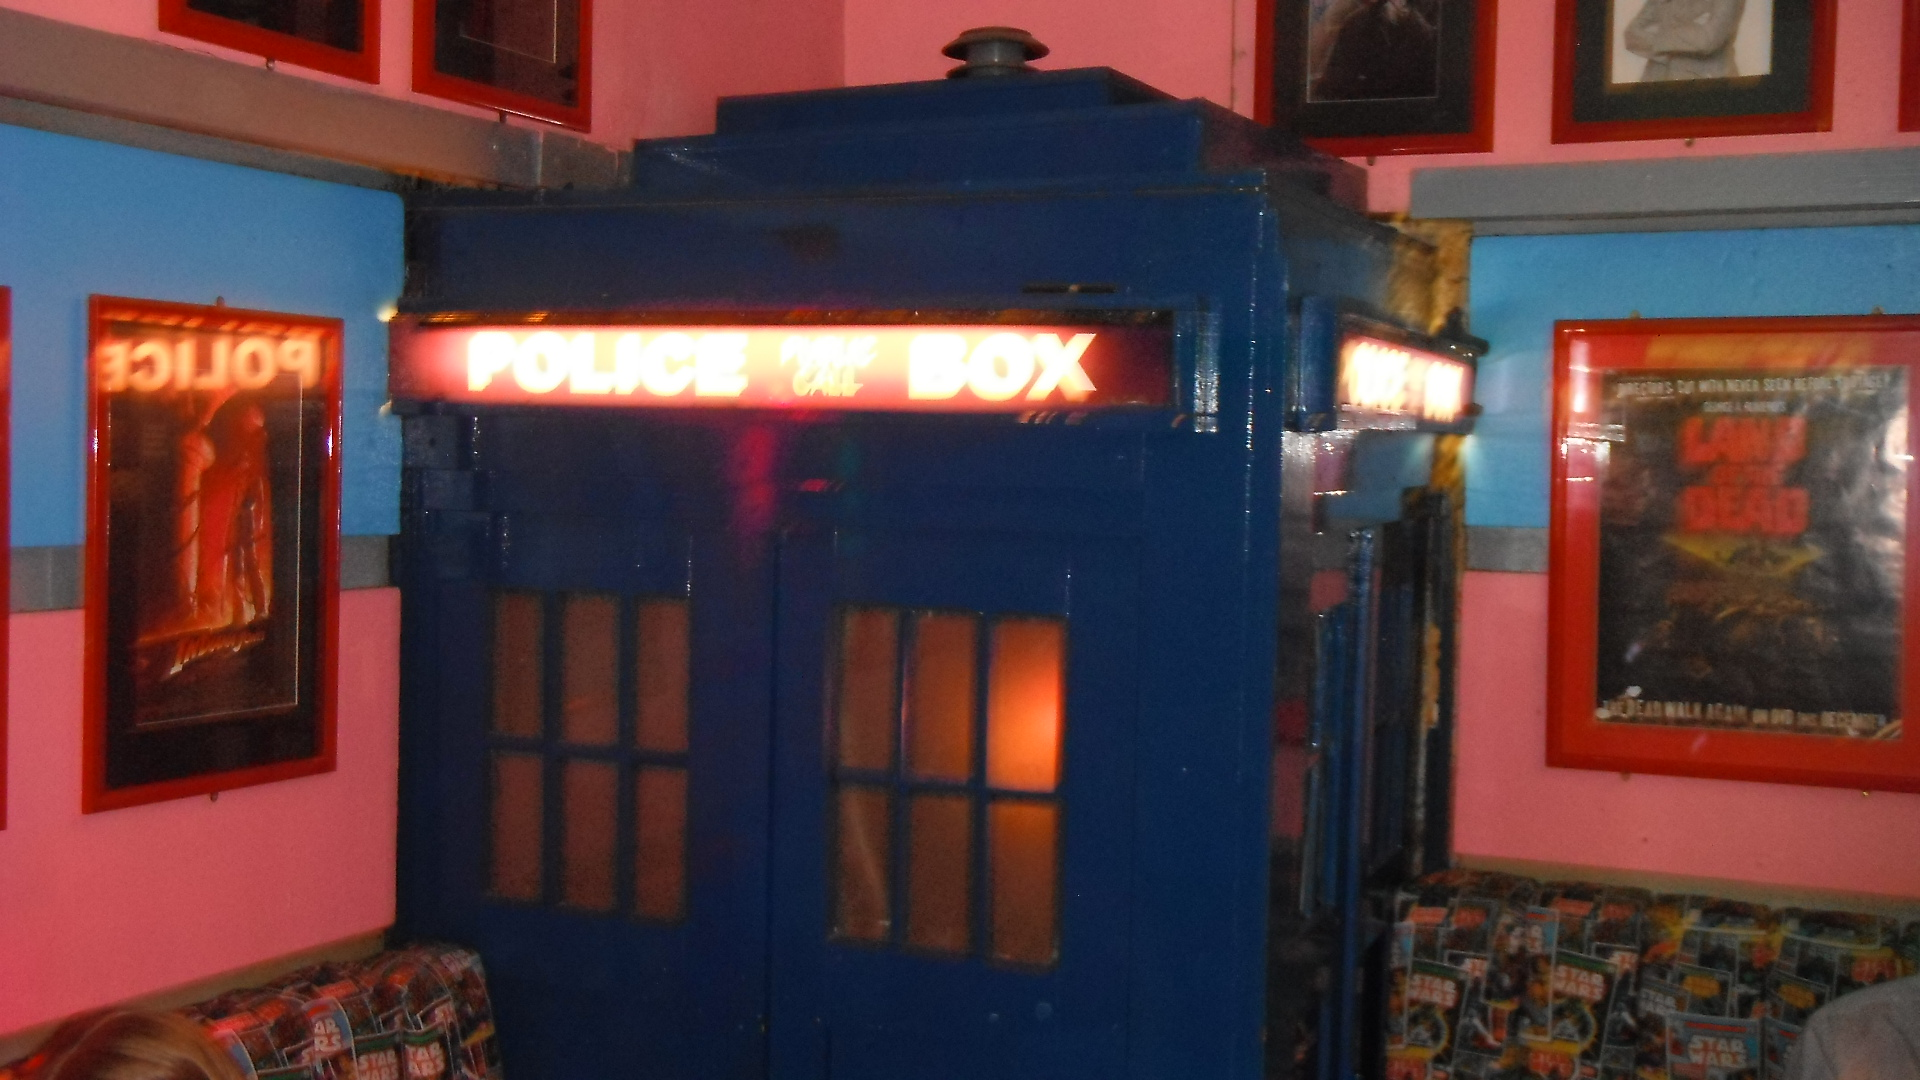 Dr Who TARDIS  time machine, taken by me in FAB Cafe, Manchester